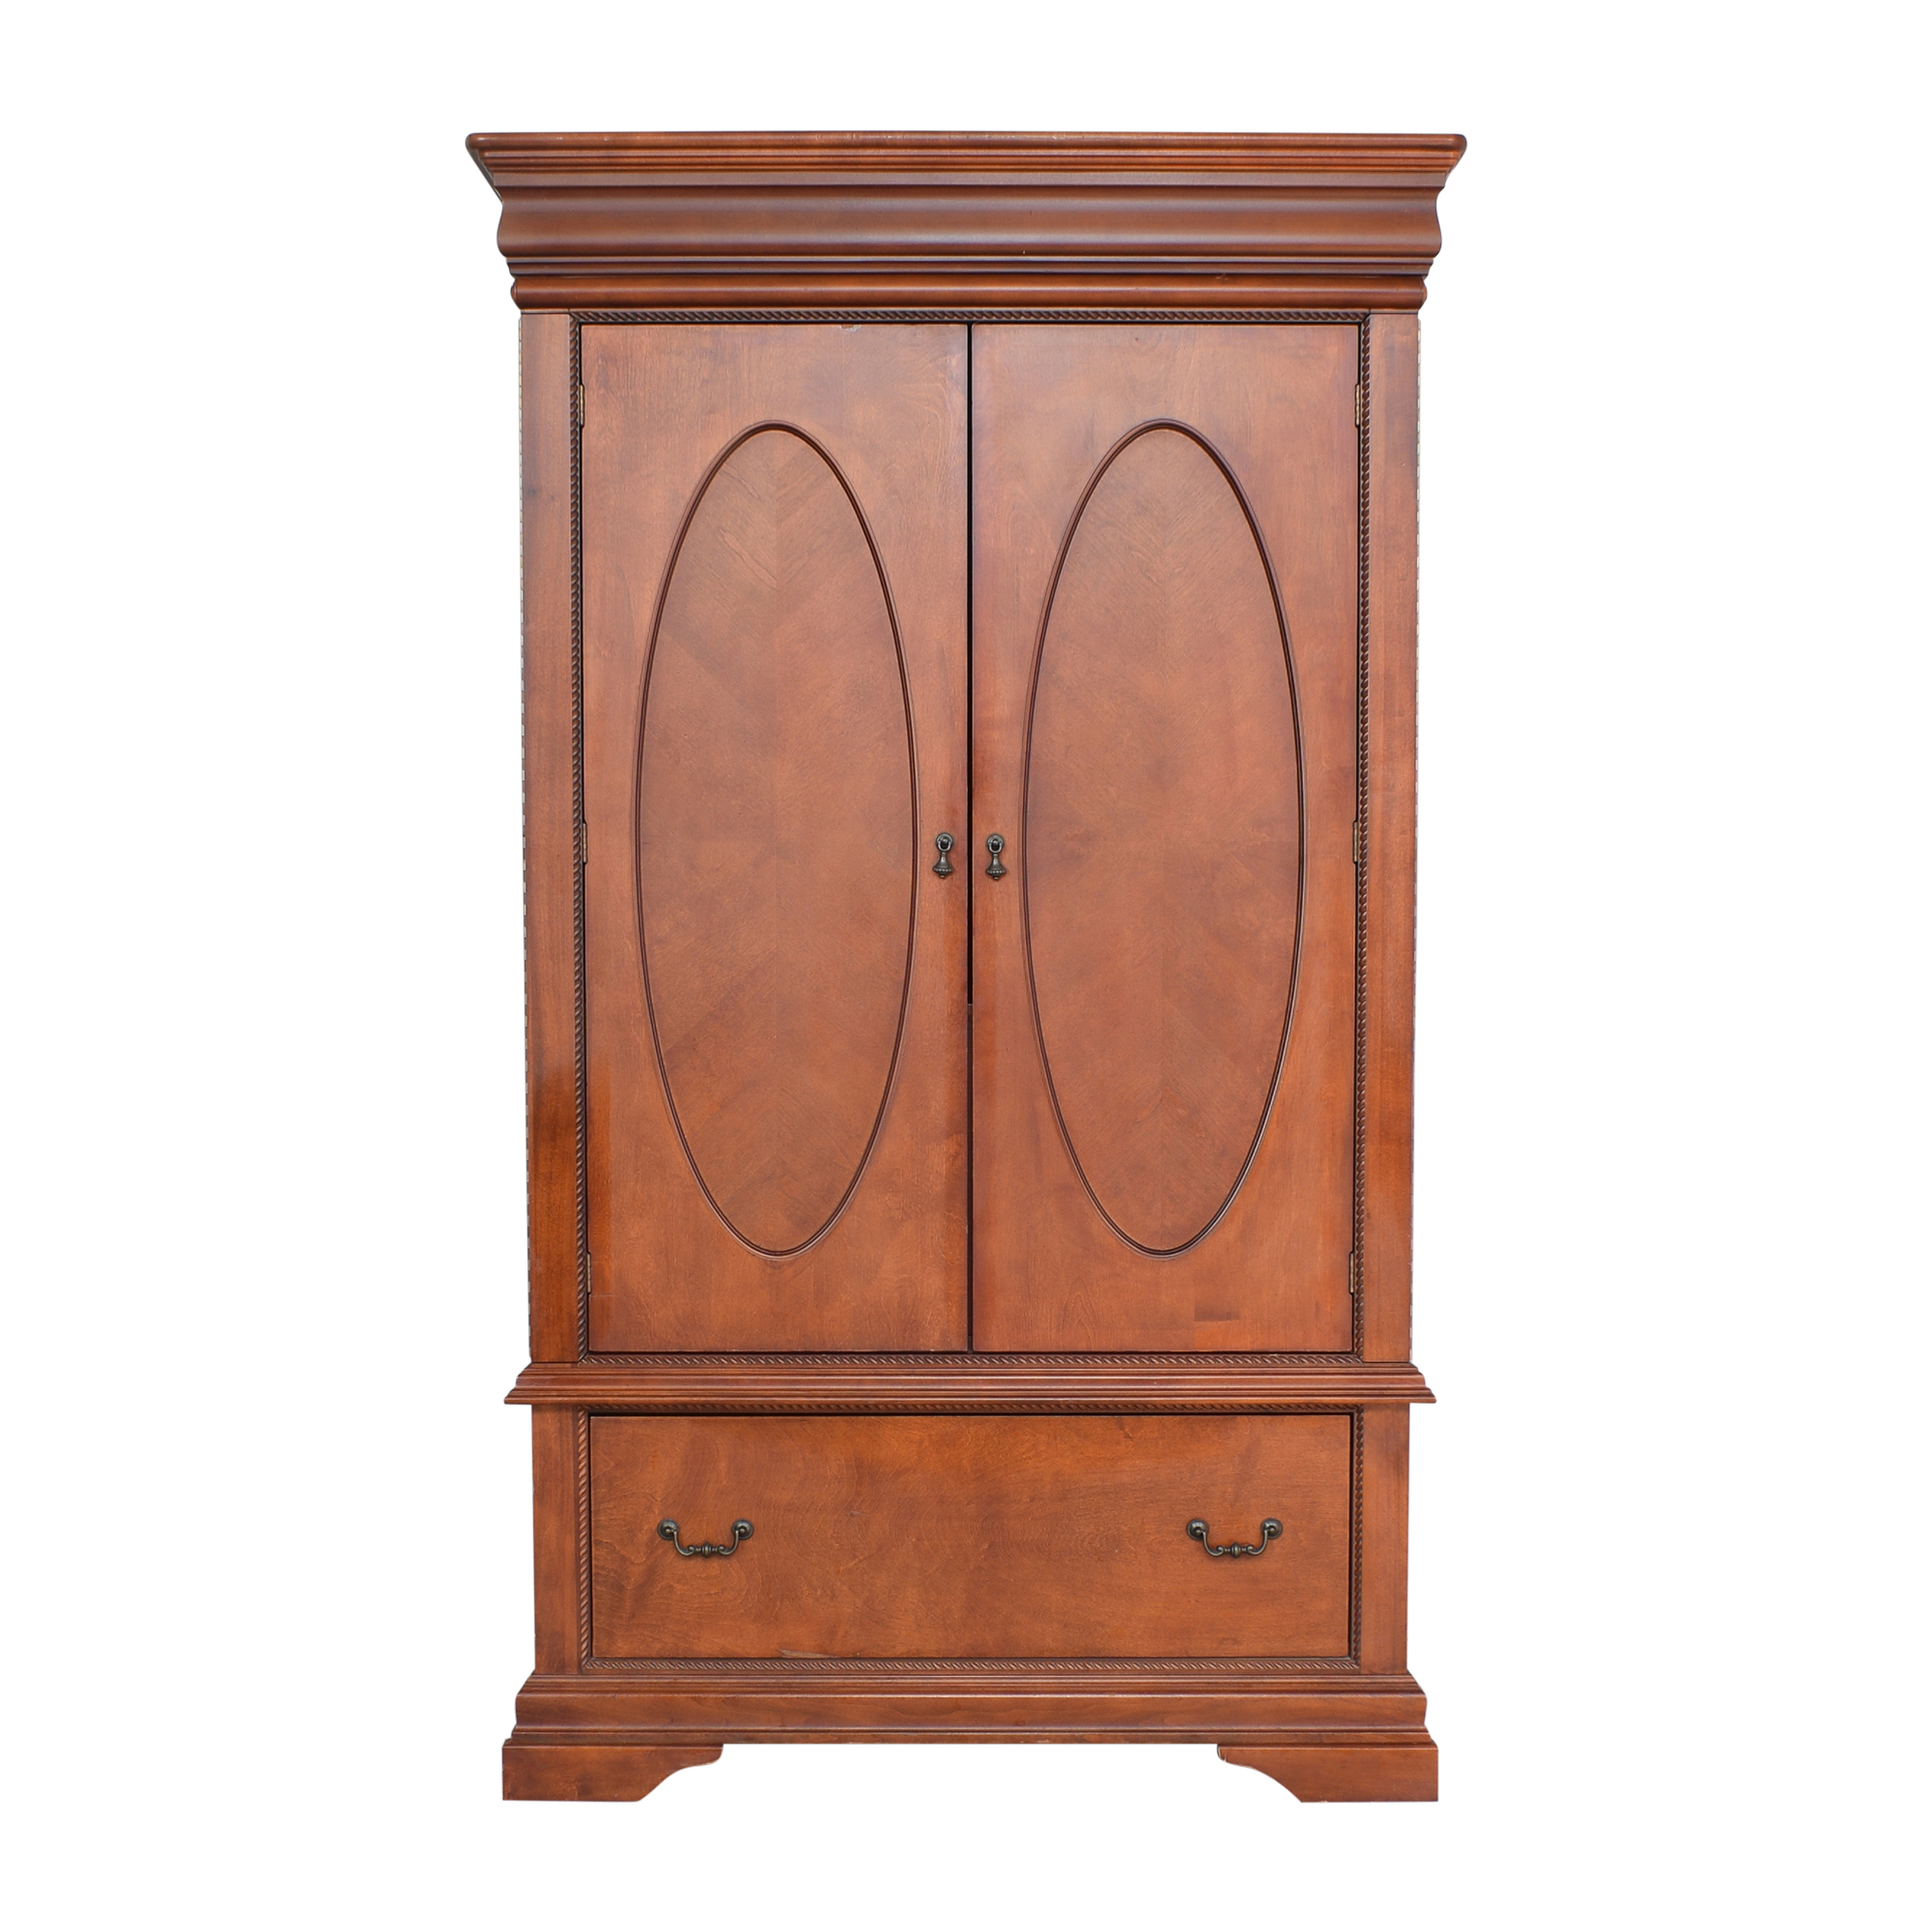 Broyhill Furniture Broyhill Furniture Two Door Armoire with Mirrors for sale